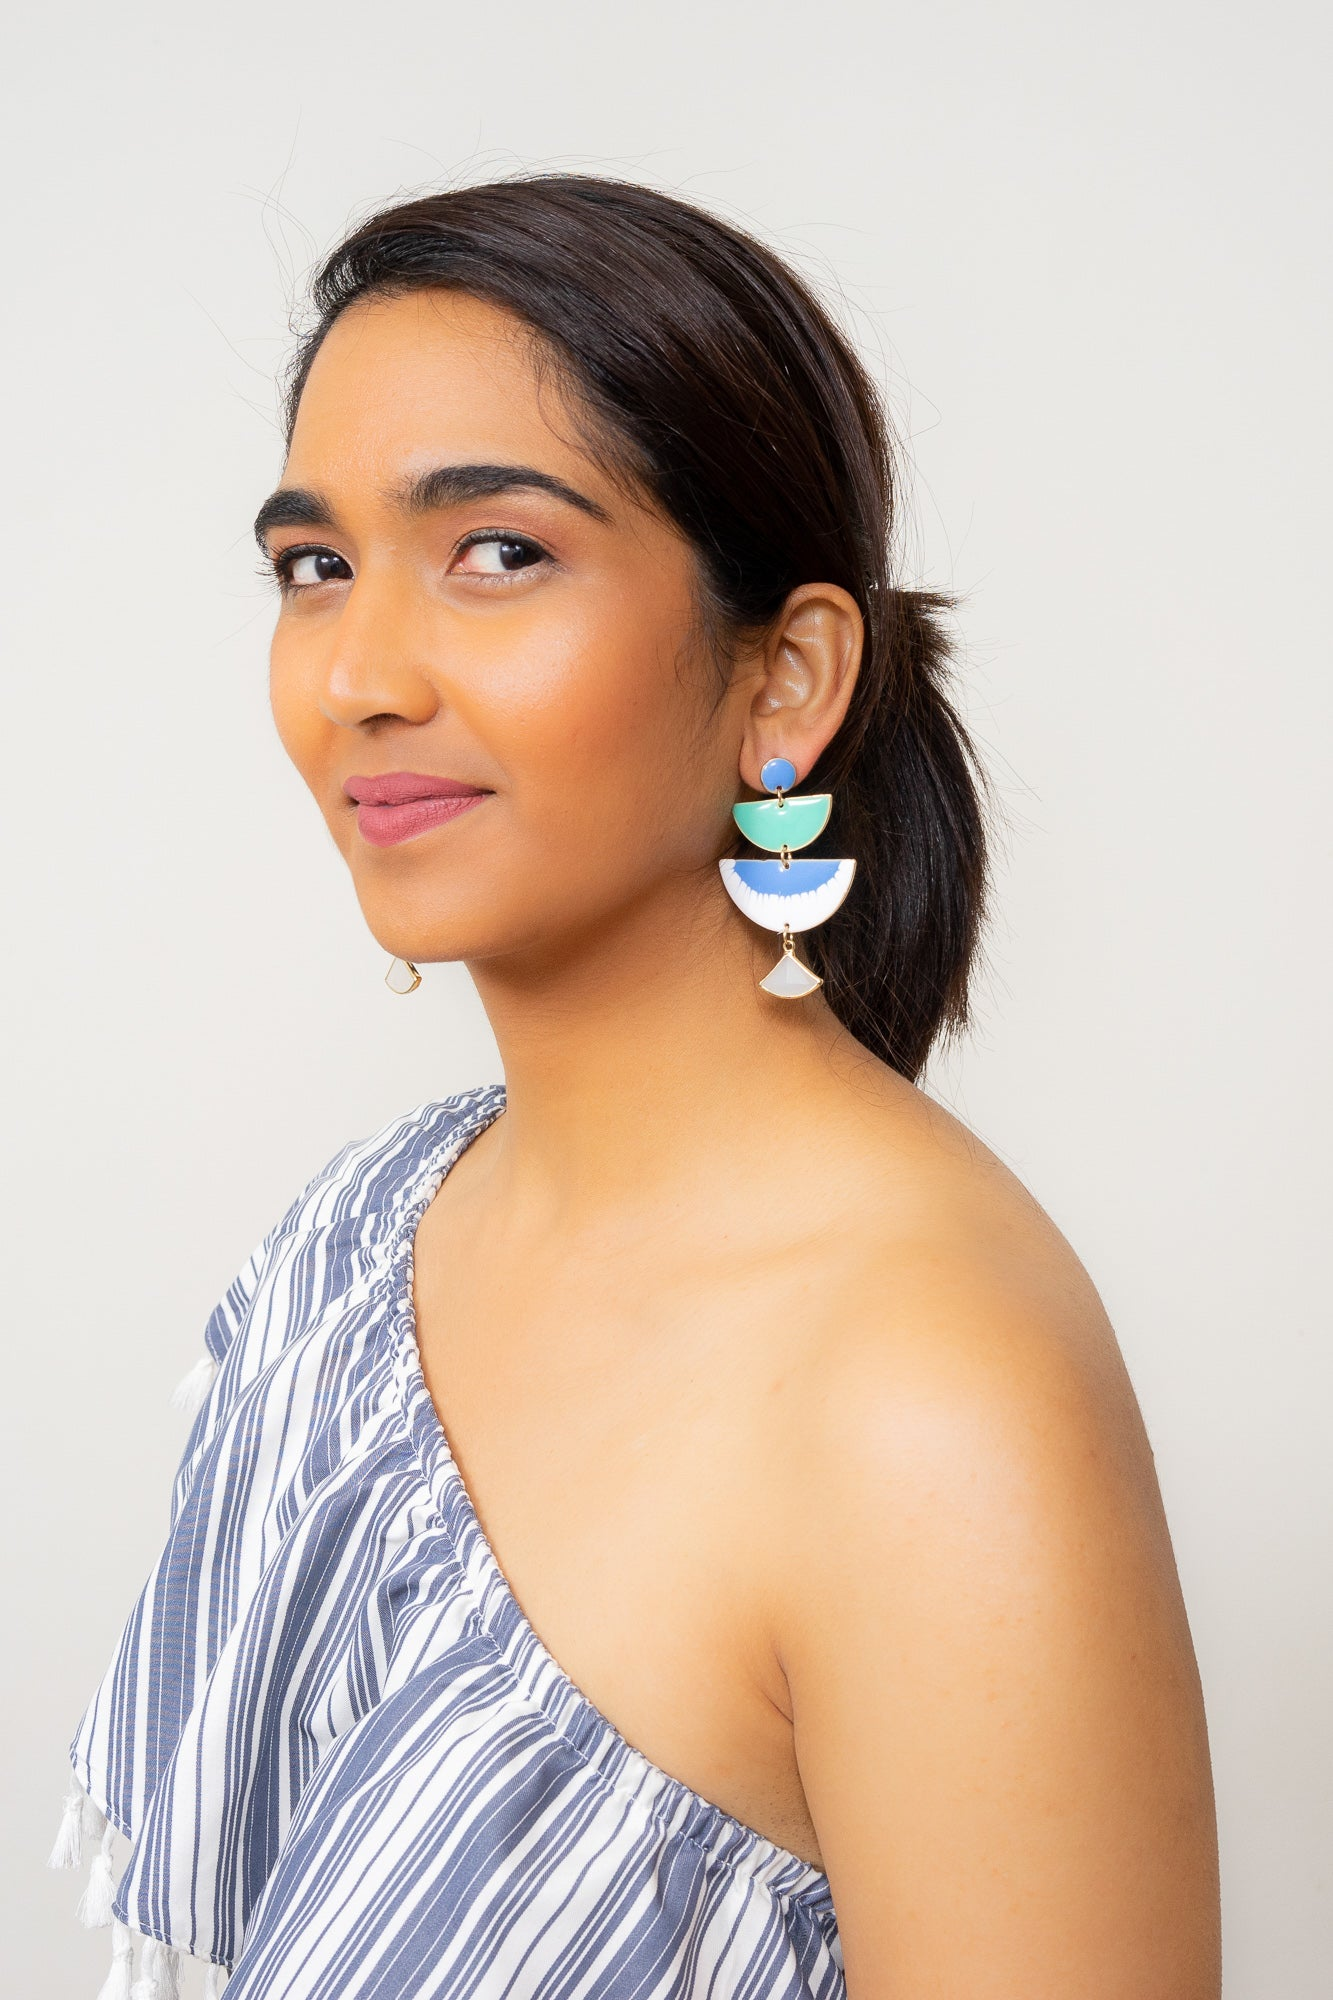 blue green enamel chandelier earrings statement earrings by Janna Conner on model